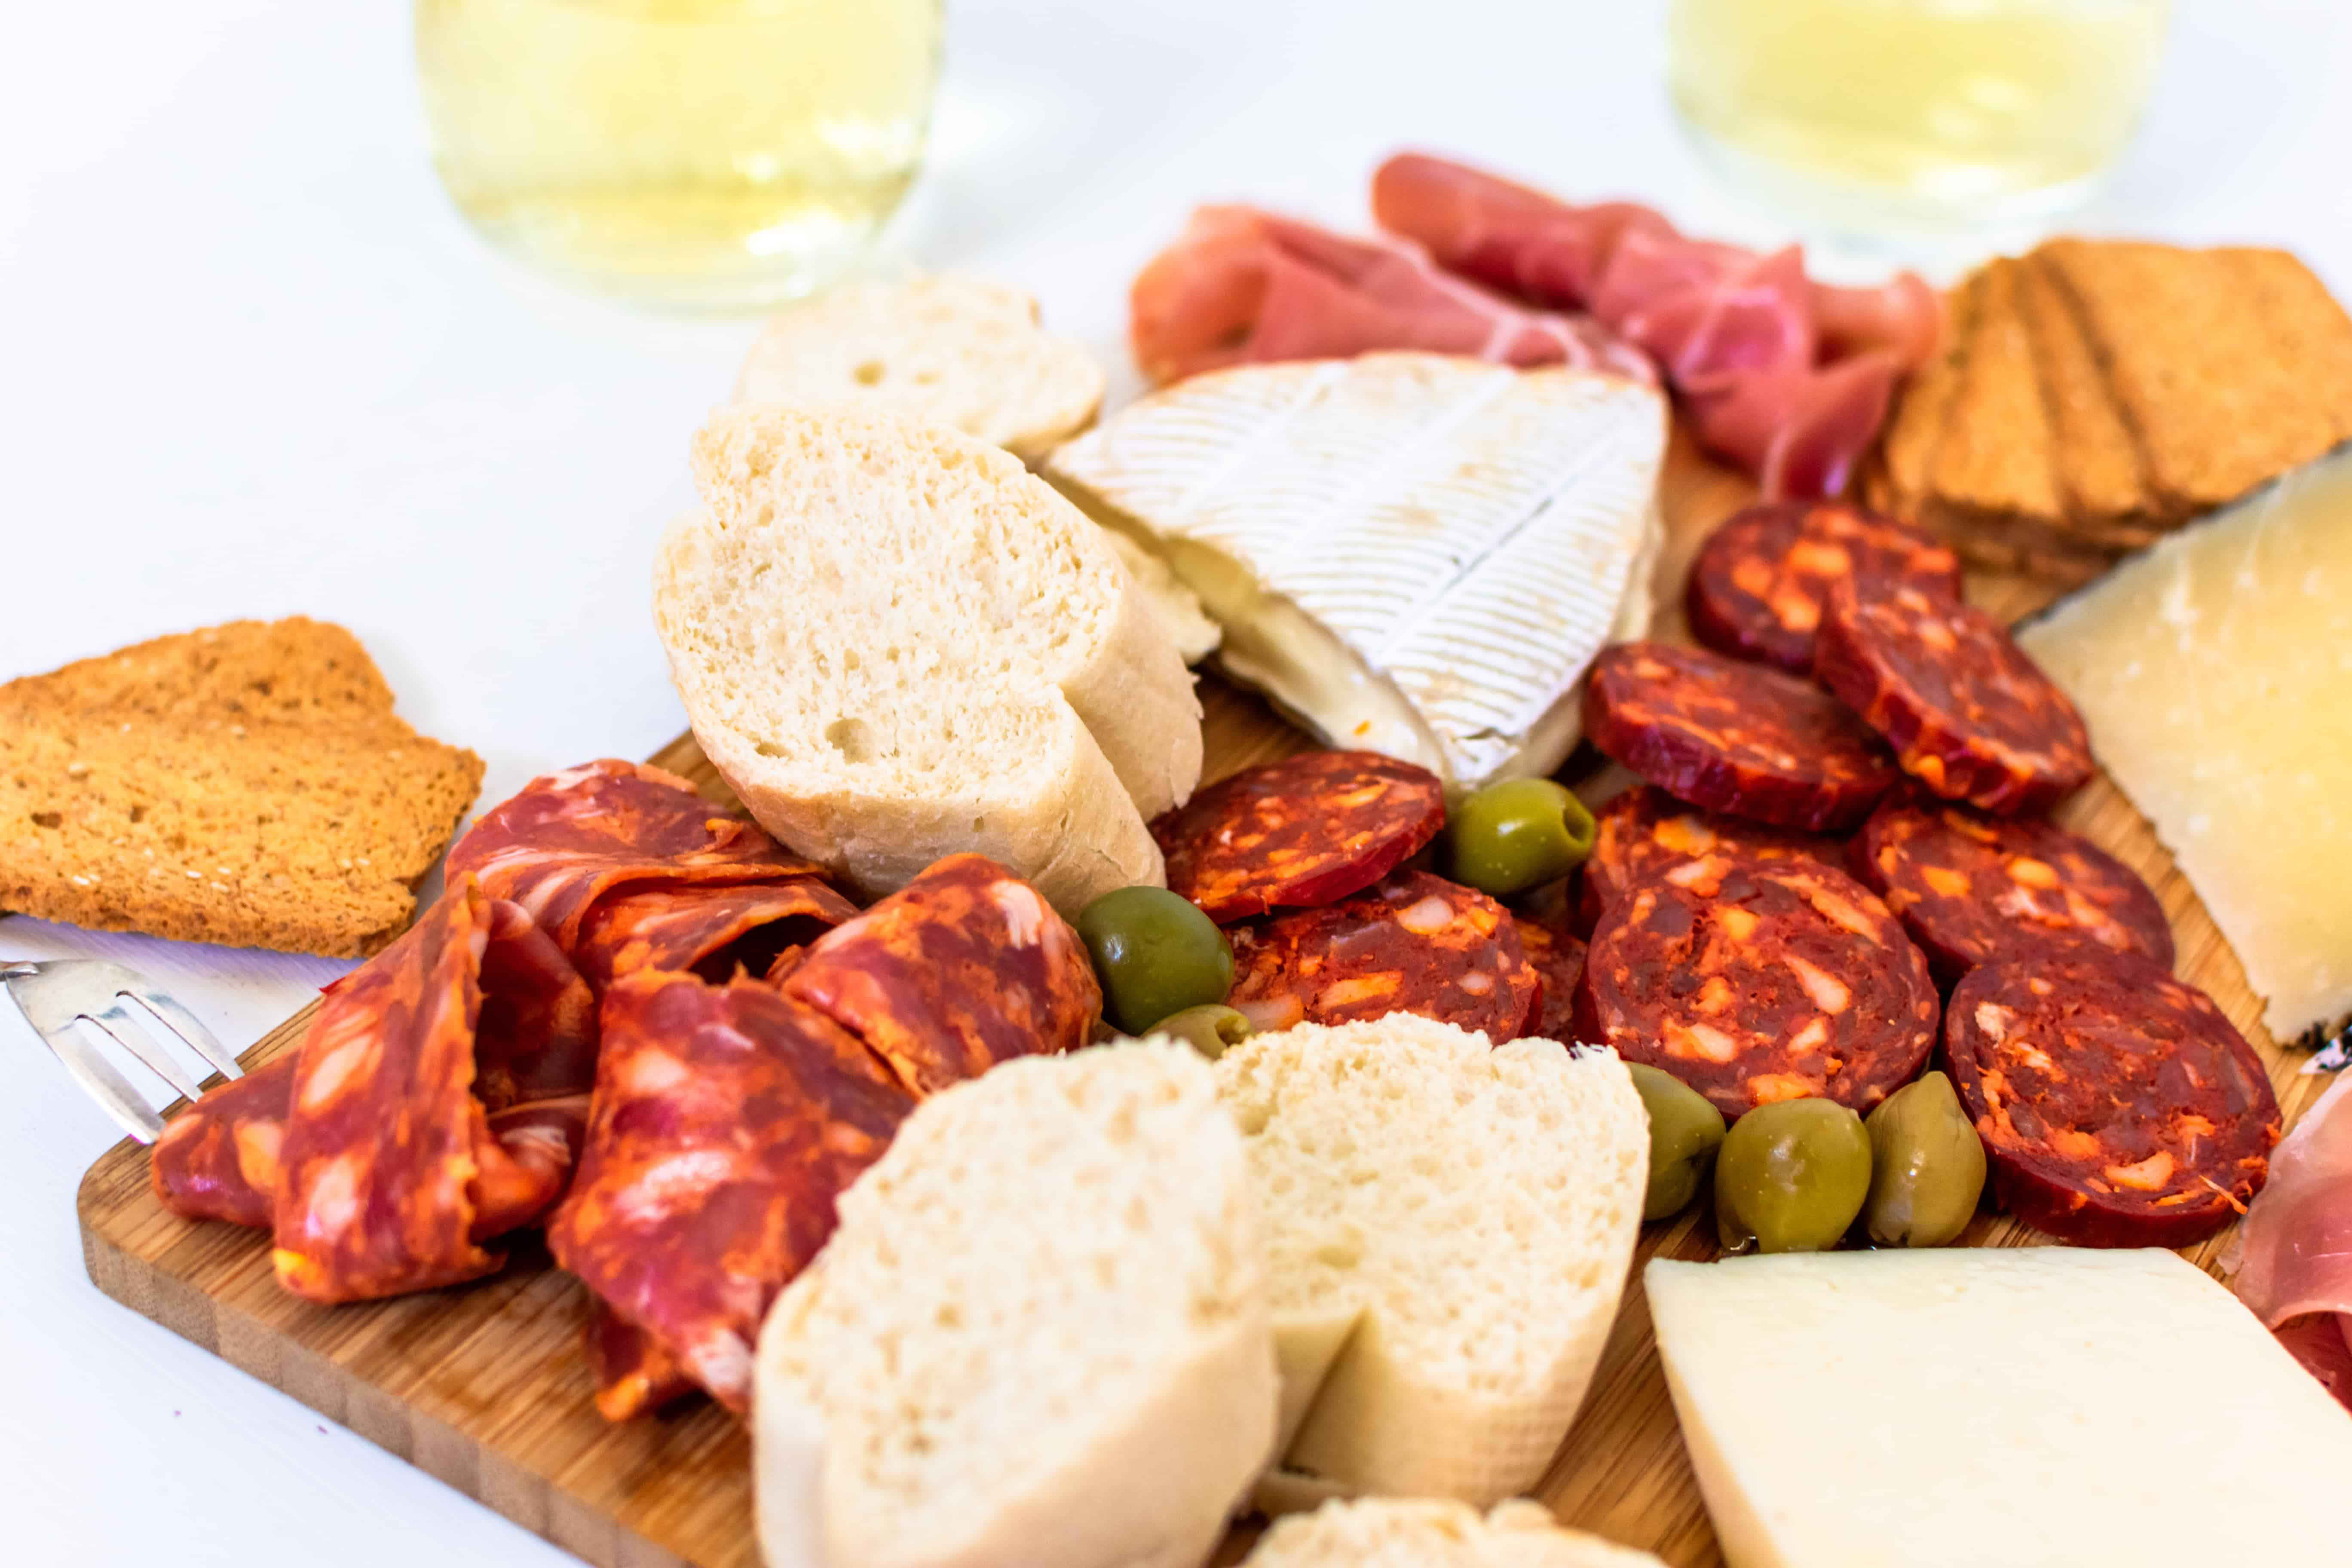 A close up of a Spanish cheese board.